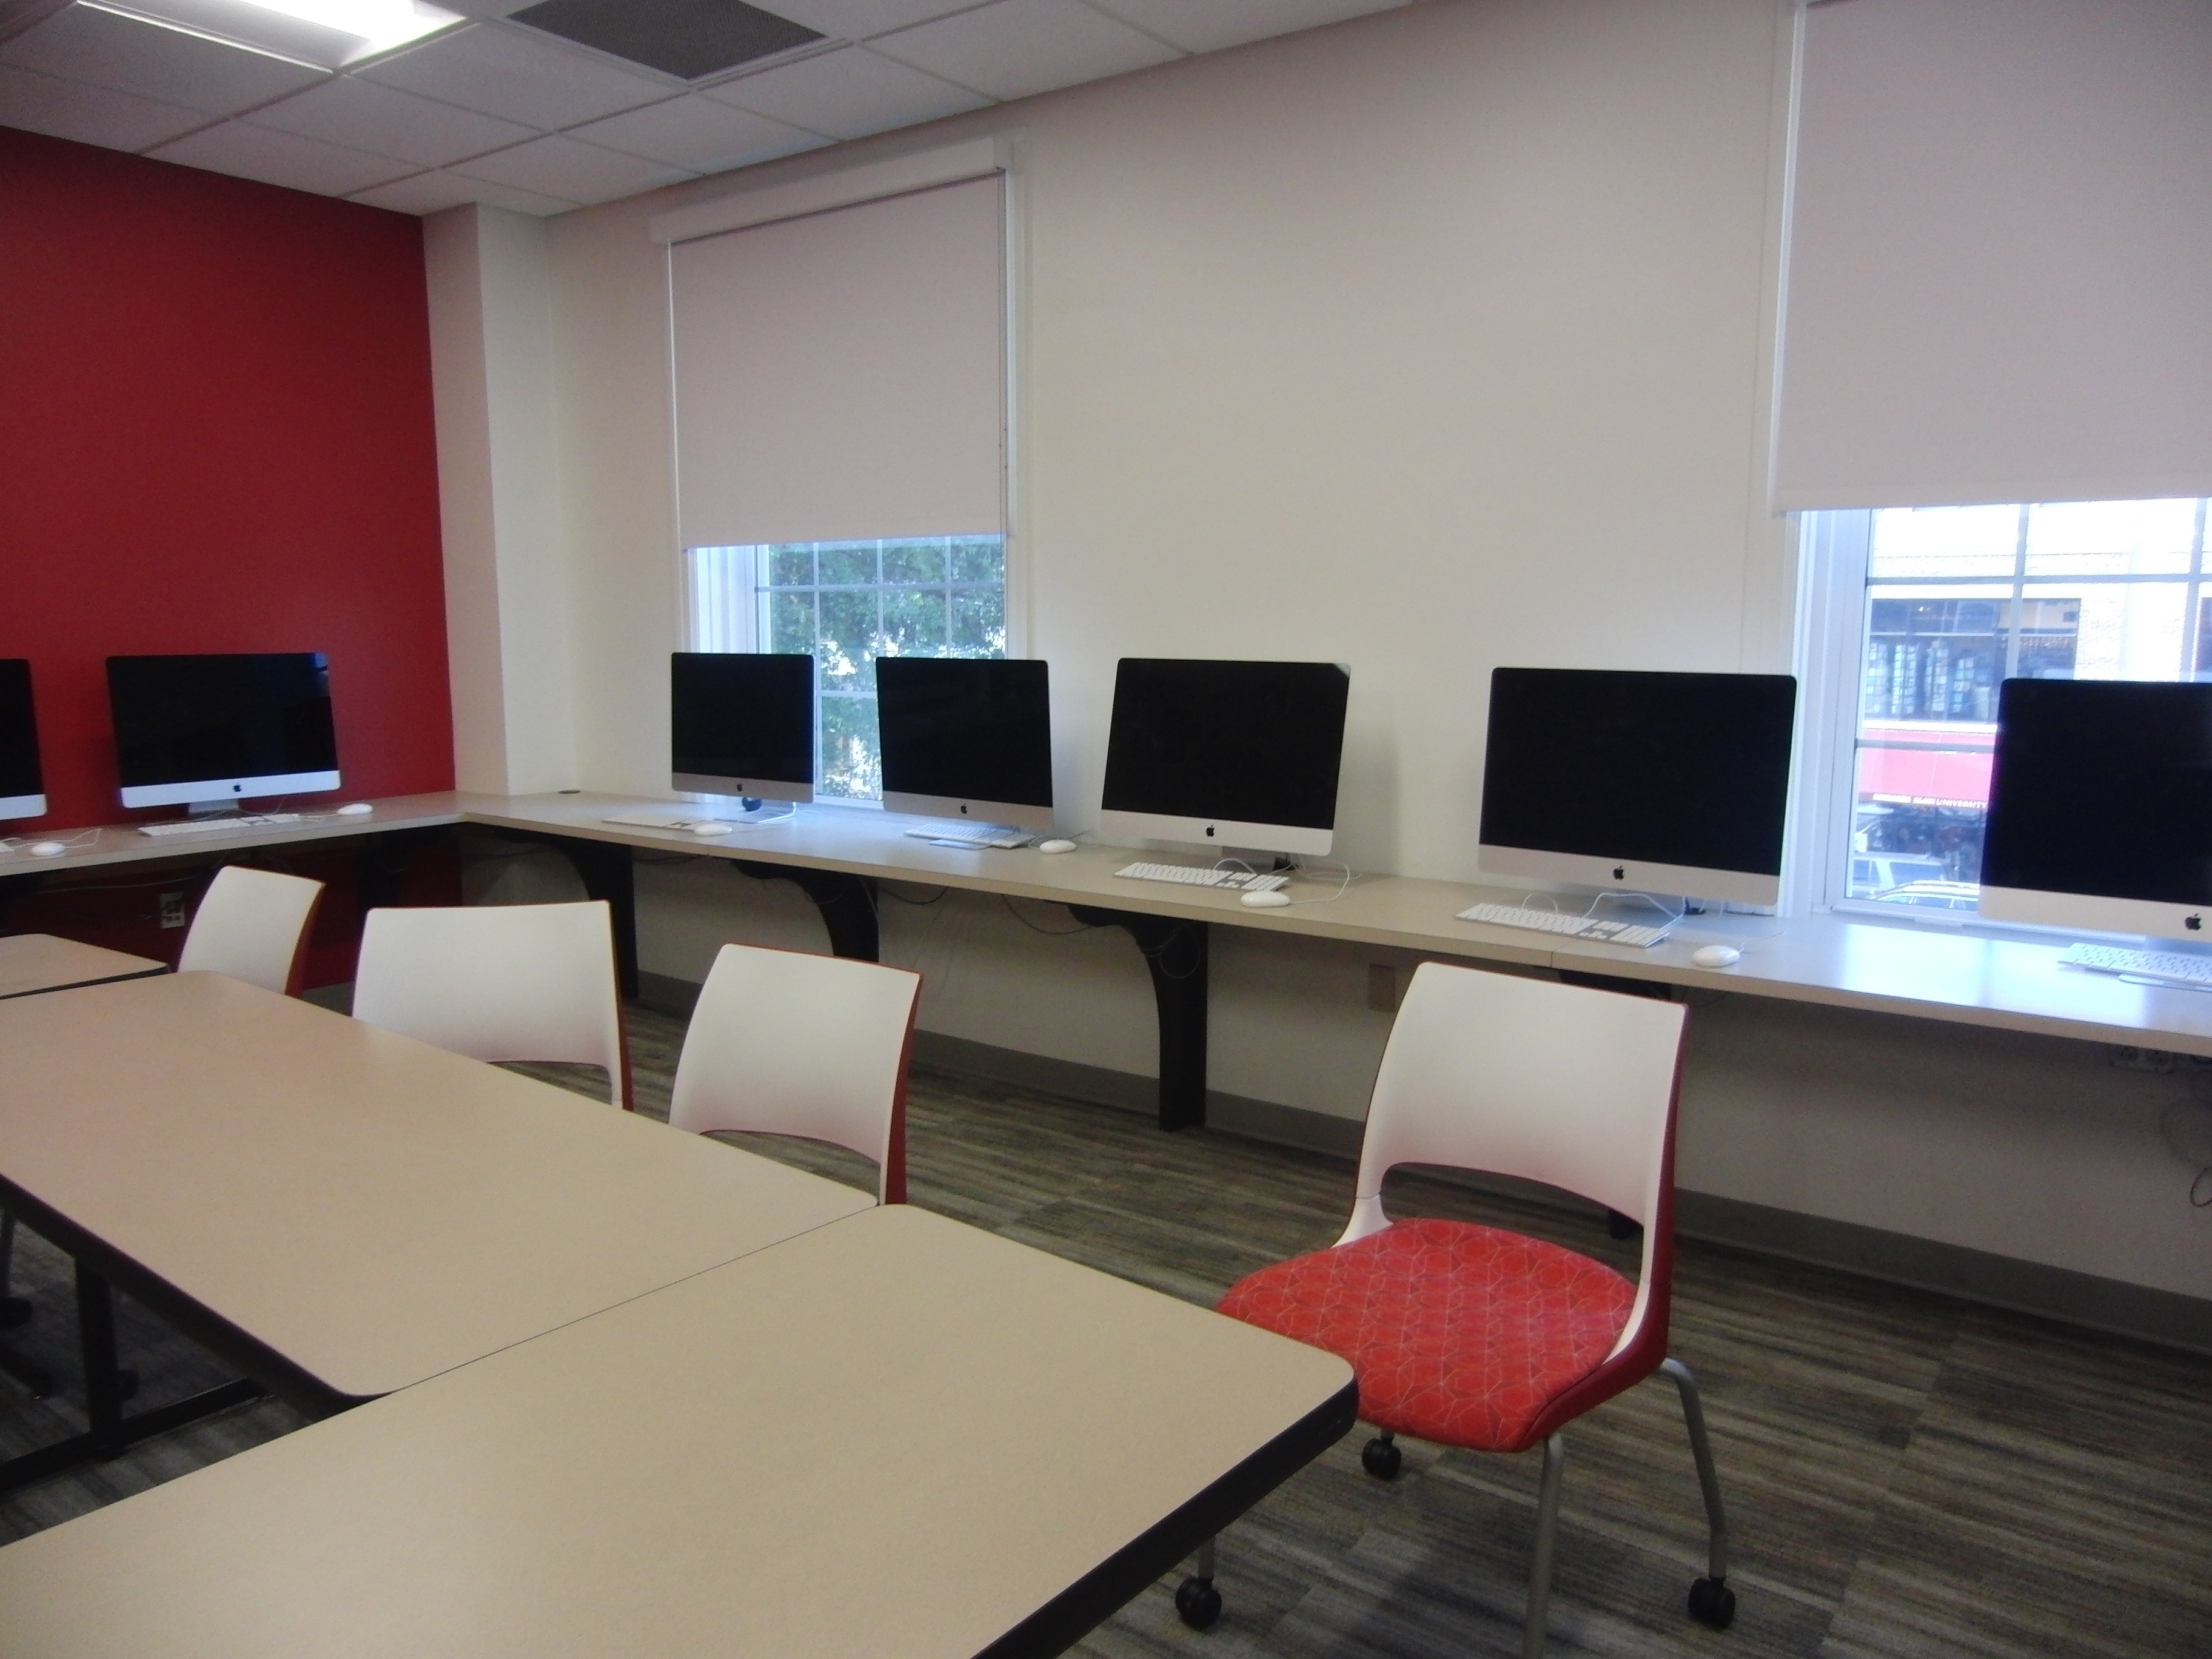 Photo of the classroom space showing the iMacs against the wall and mobile furniture